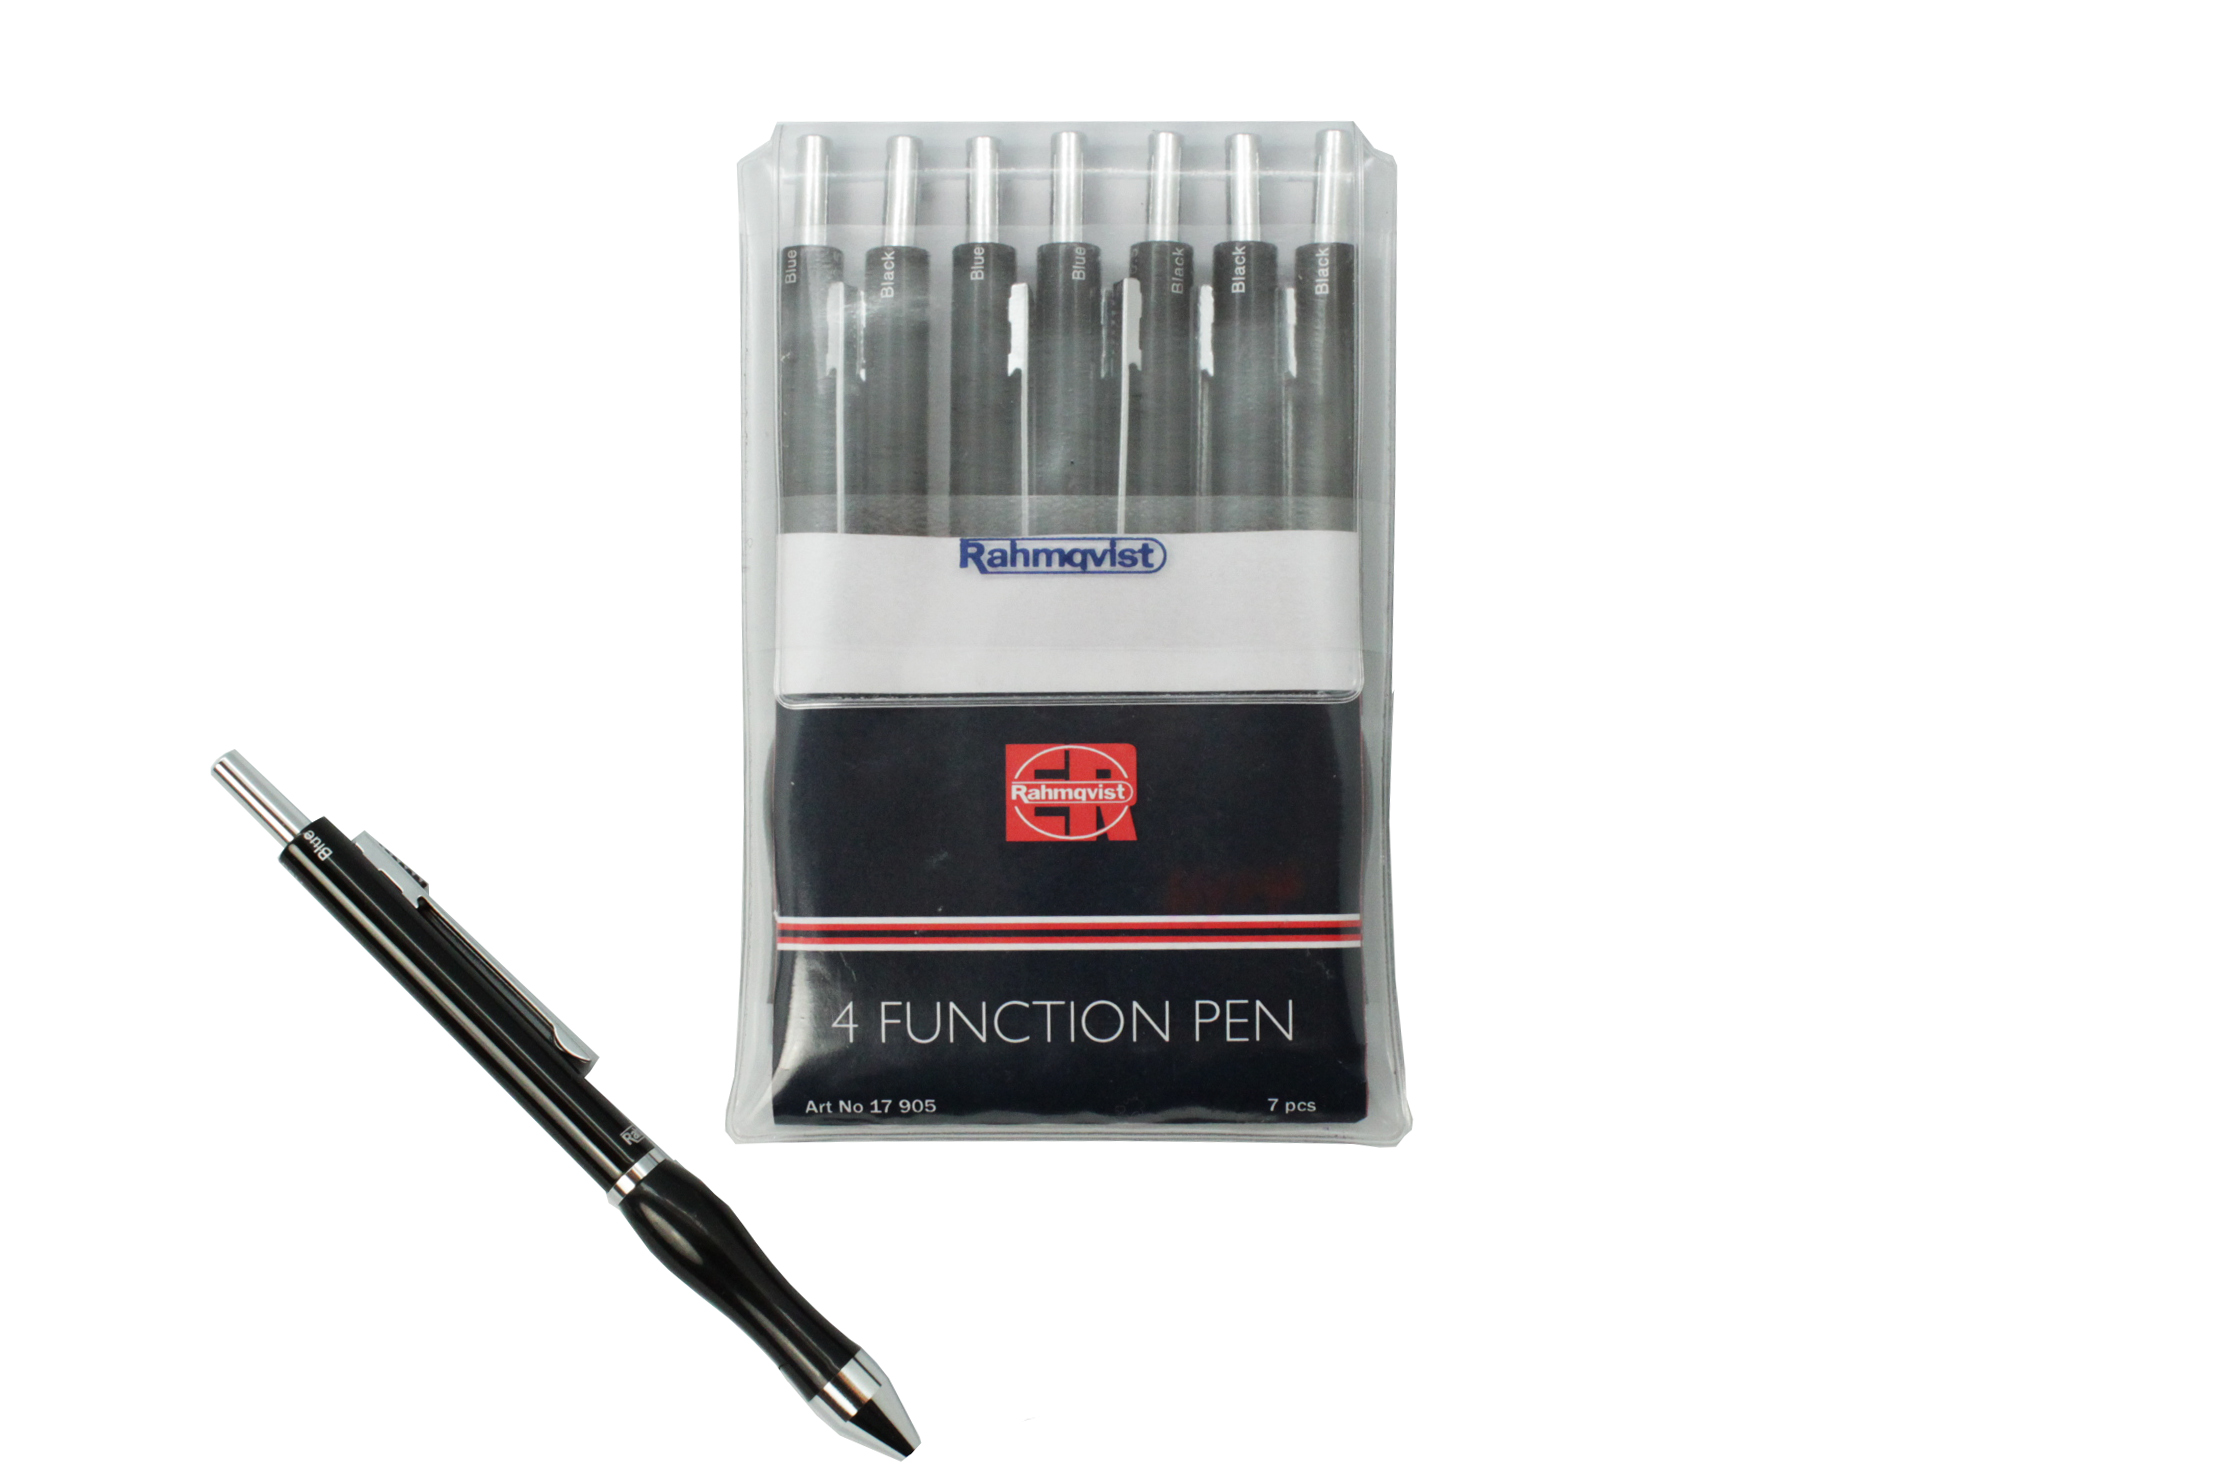 Four Function Pen